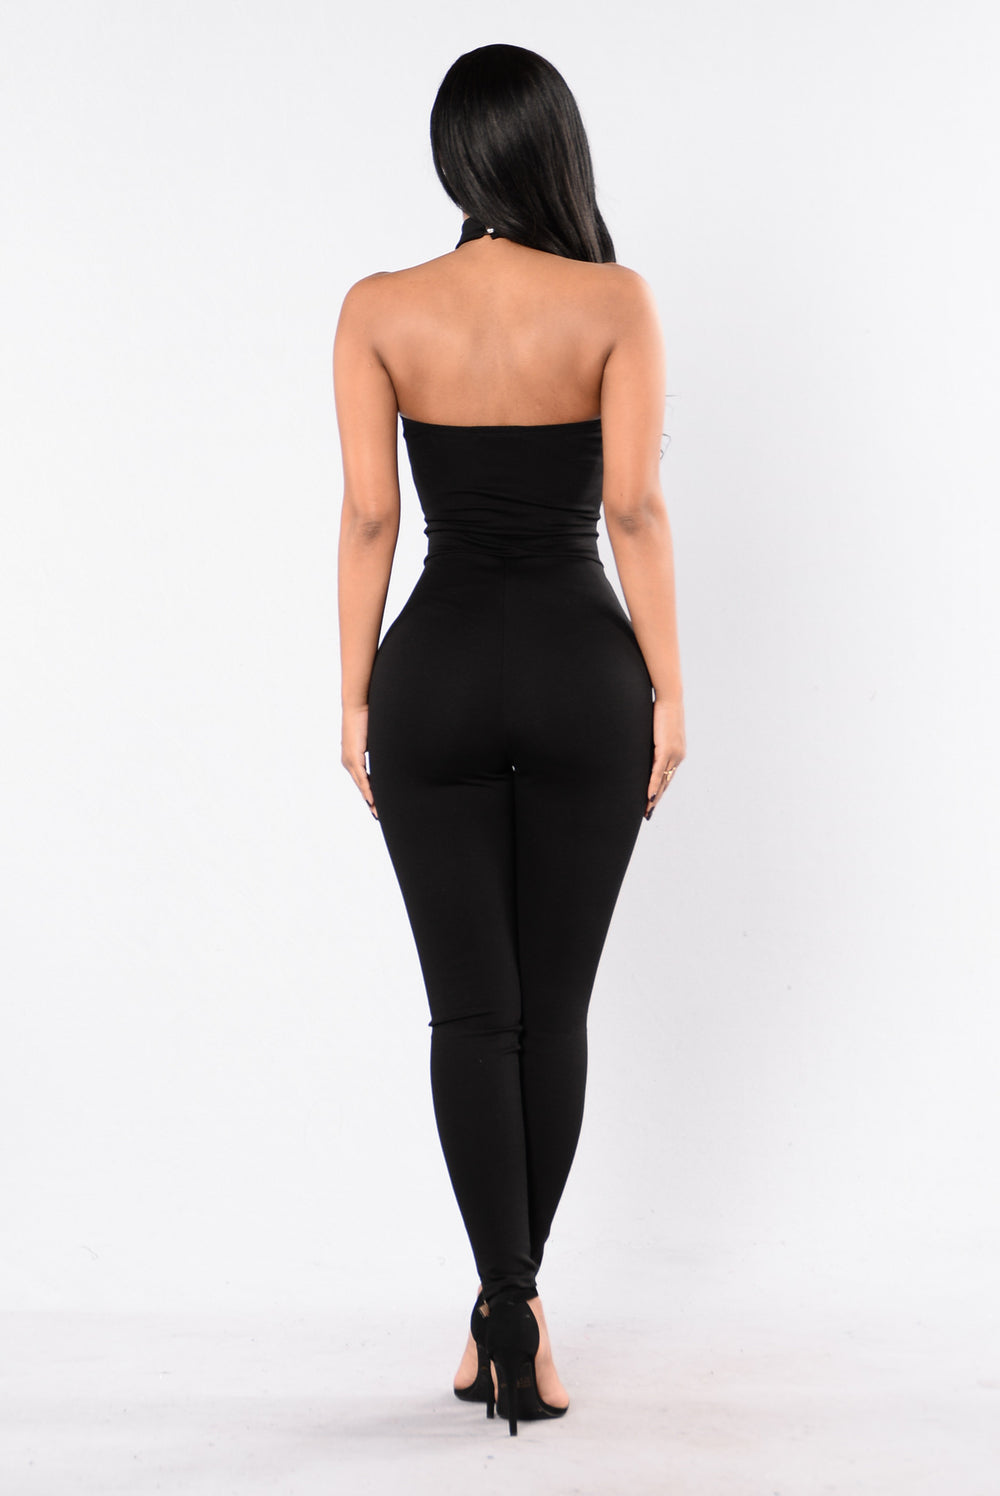 Make You Change Your Ways Jumpsuit - Black